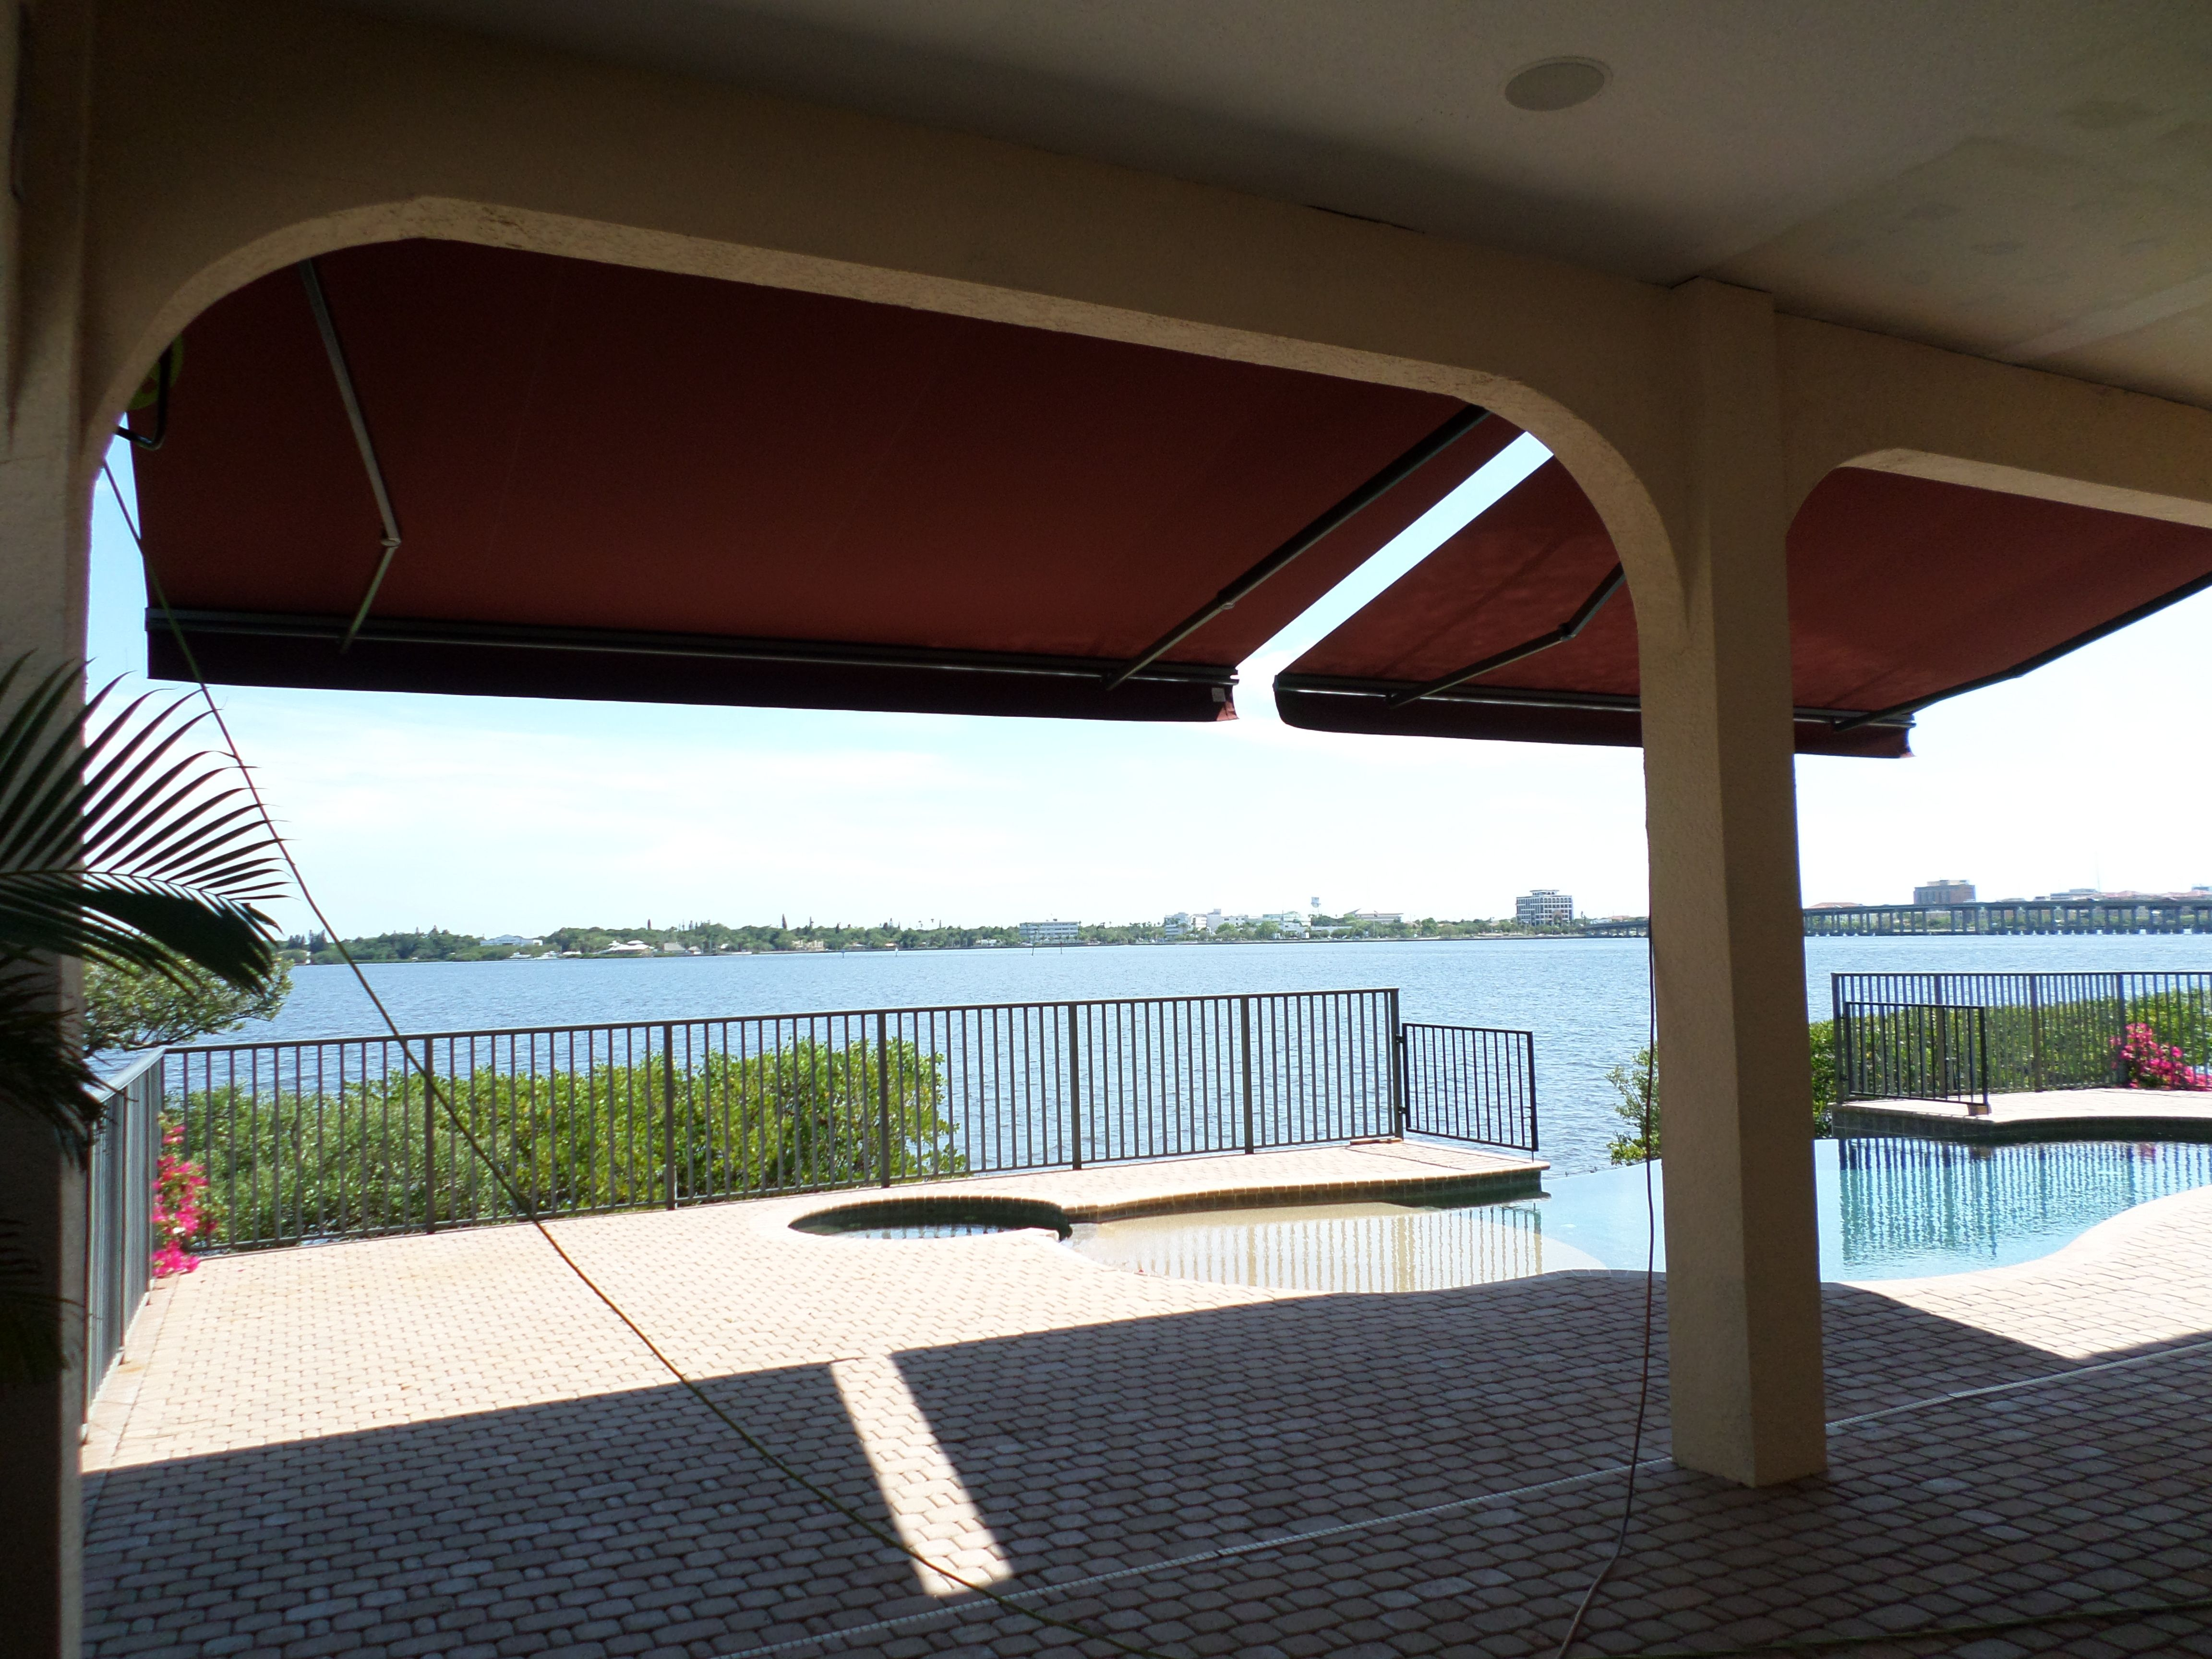 Double Retractable Awnings To Enhance The River View Awning Installation Retractable Awning Awning